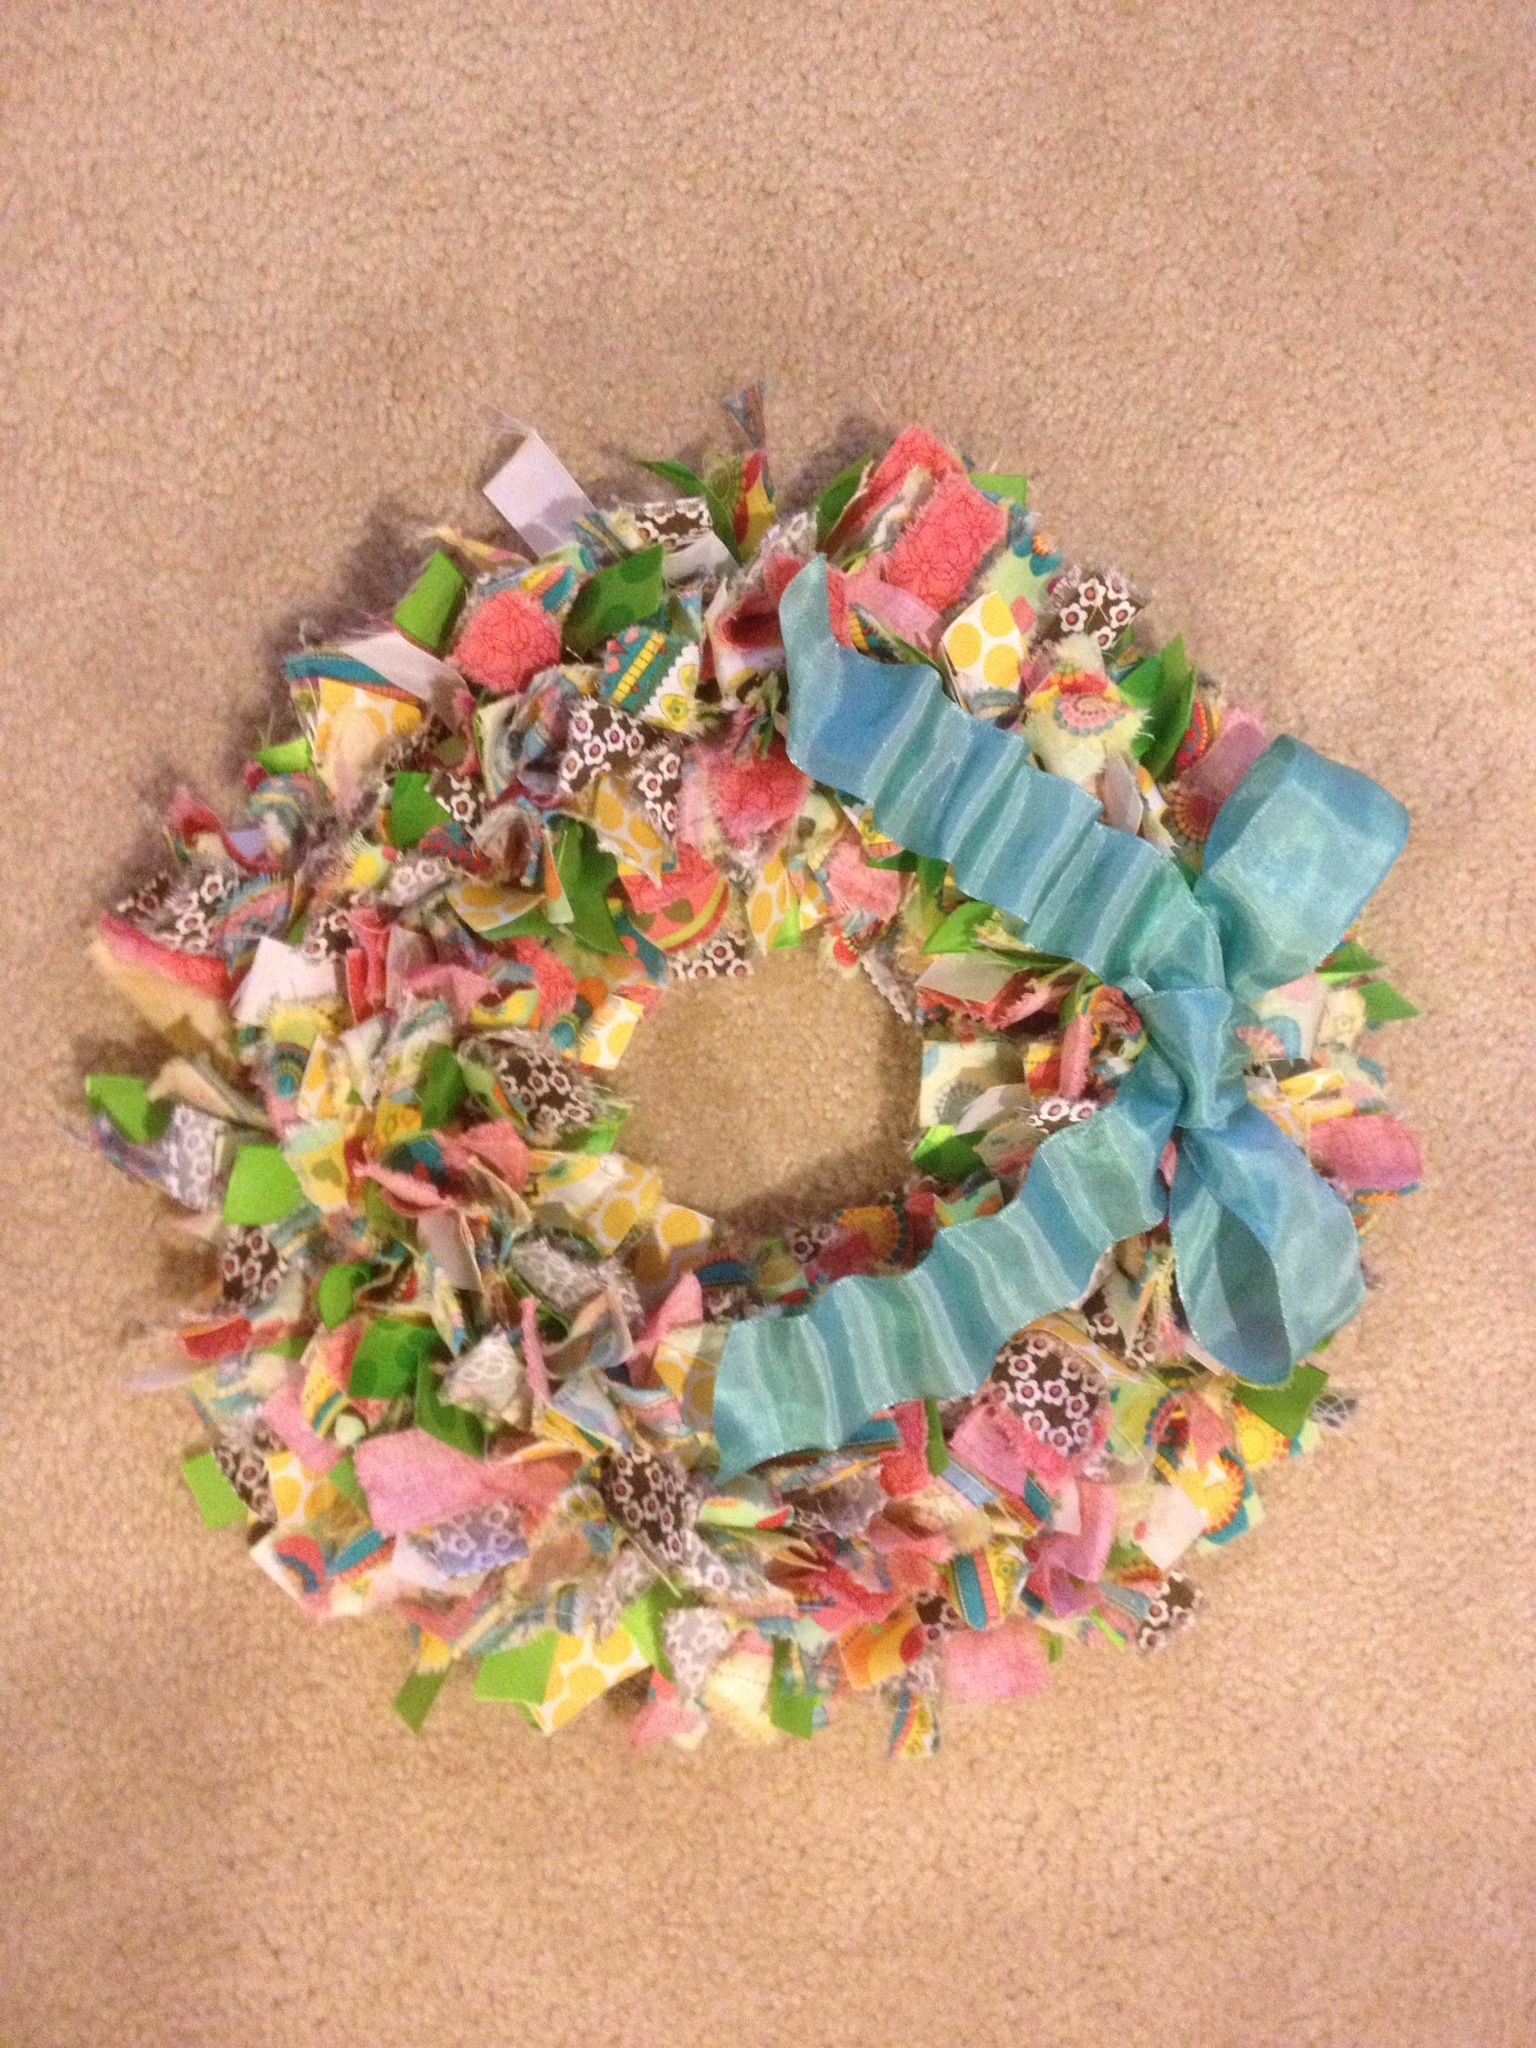 Spring/Summer Rag Tie Wreath I made for a friend. I used a quarter bundle from Joann's and two different rolls of coordinating ribbon cut the same length as the rag-ties (1-1/2 inches by 7 inches). Then I found an accent colored ribbon for the bow.  It's super easy and fun to make. I liked ripping apart the fabric. It's a good way to release stress! :)